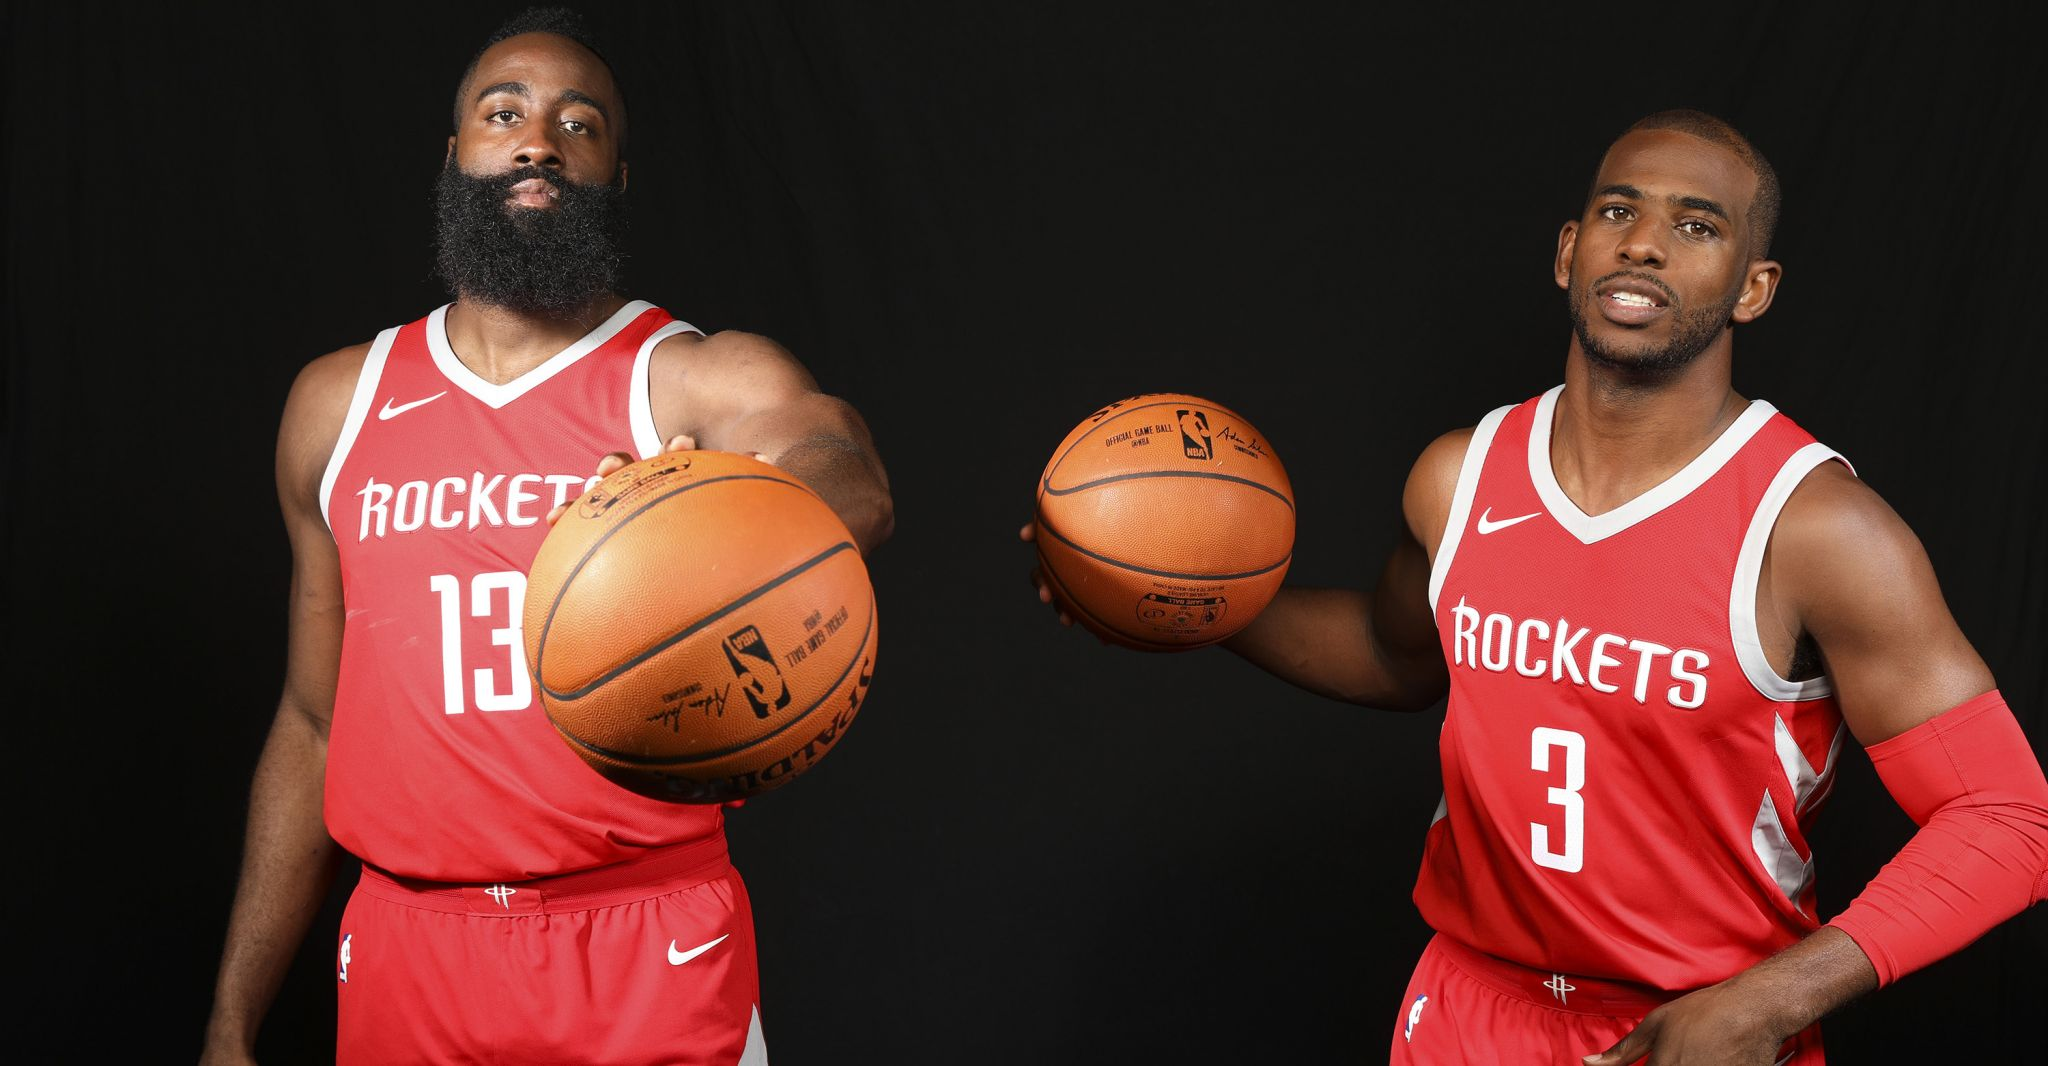 d4fbd1b31ed8 Rockets working on rotation of James Harden